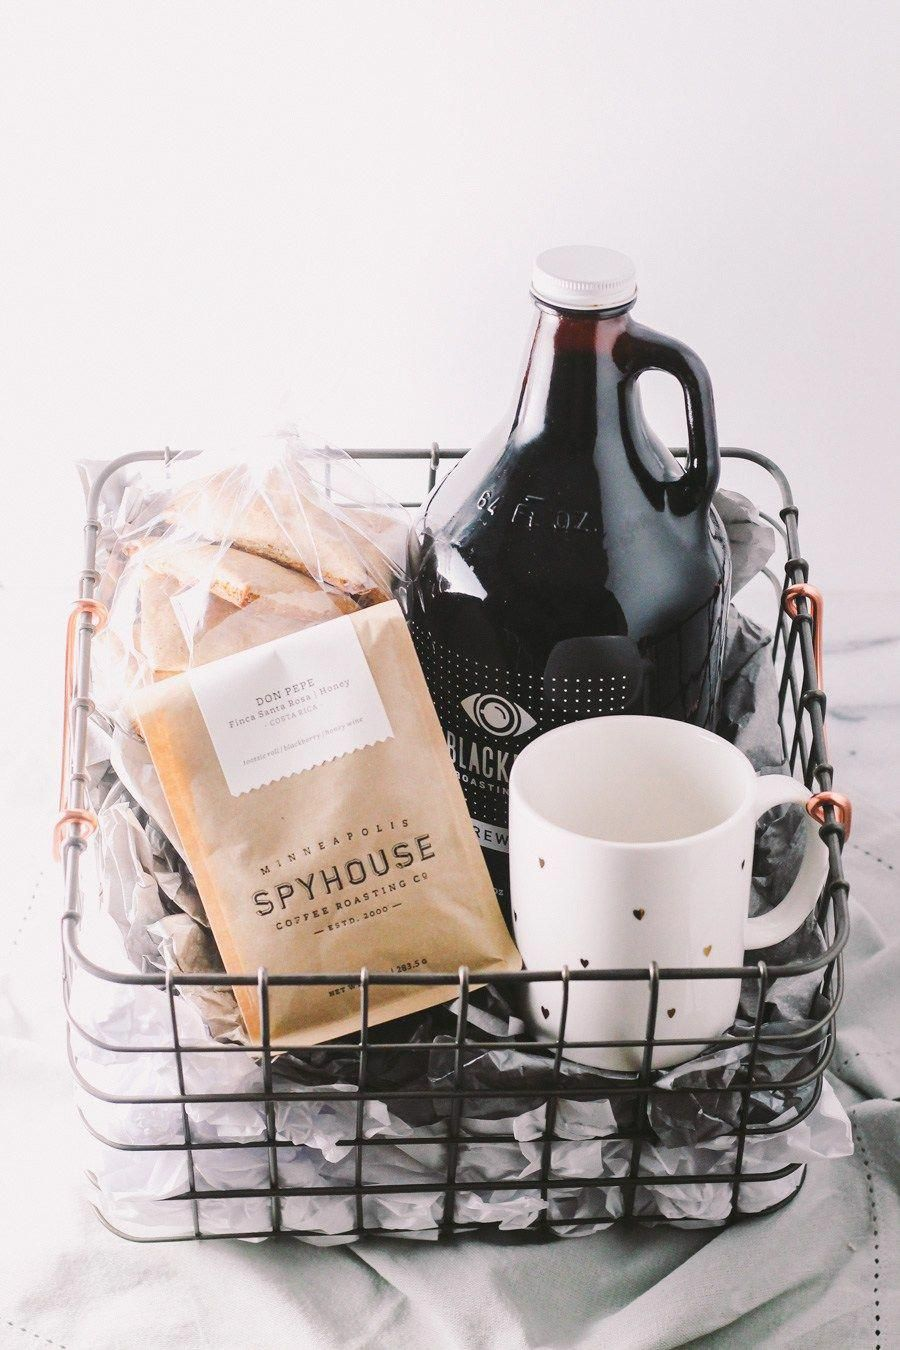 treat the coffee lover in your life with a homemade coffee gift basket this holiday season. a beautiful basket with locally roasted coffee, locally brewed ...